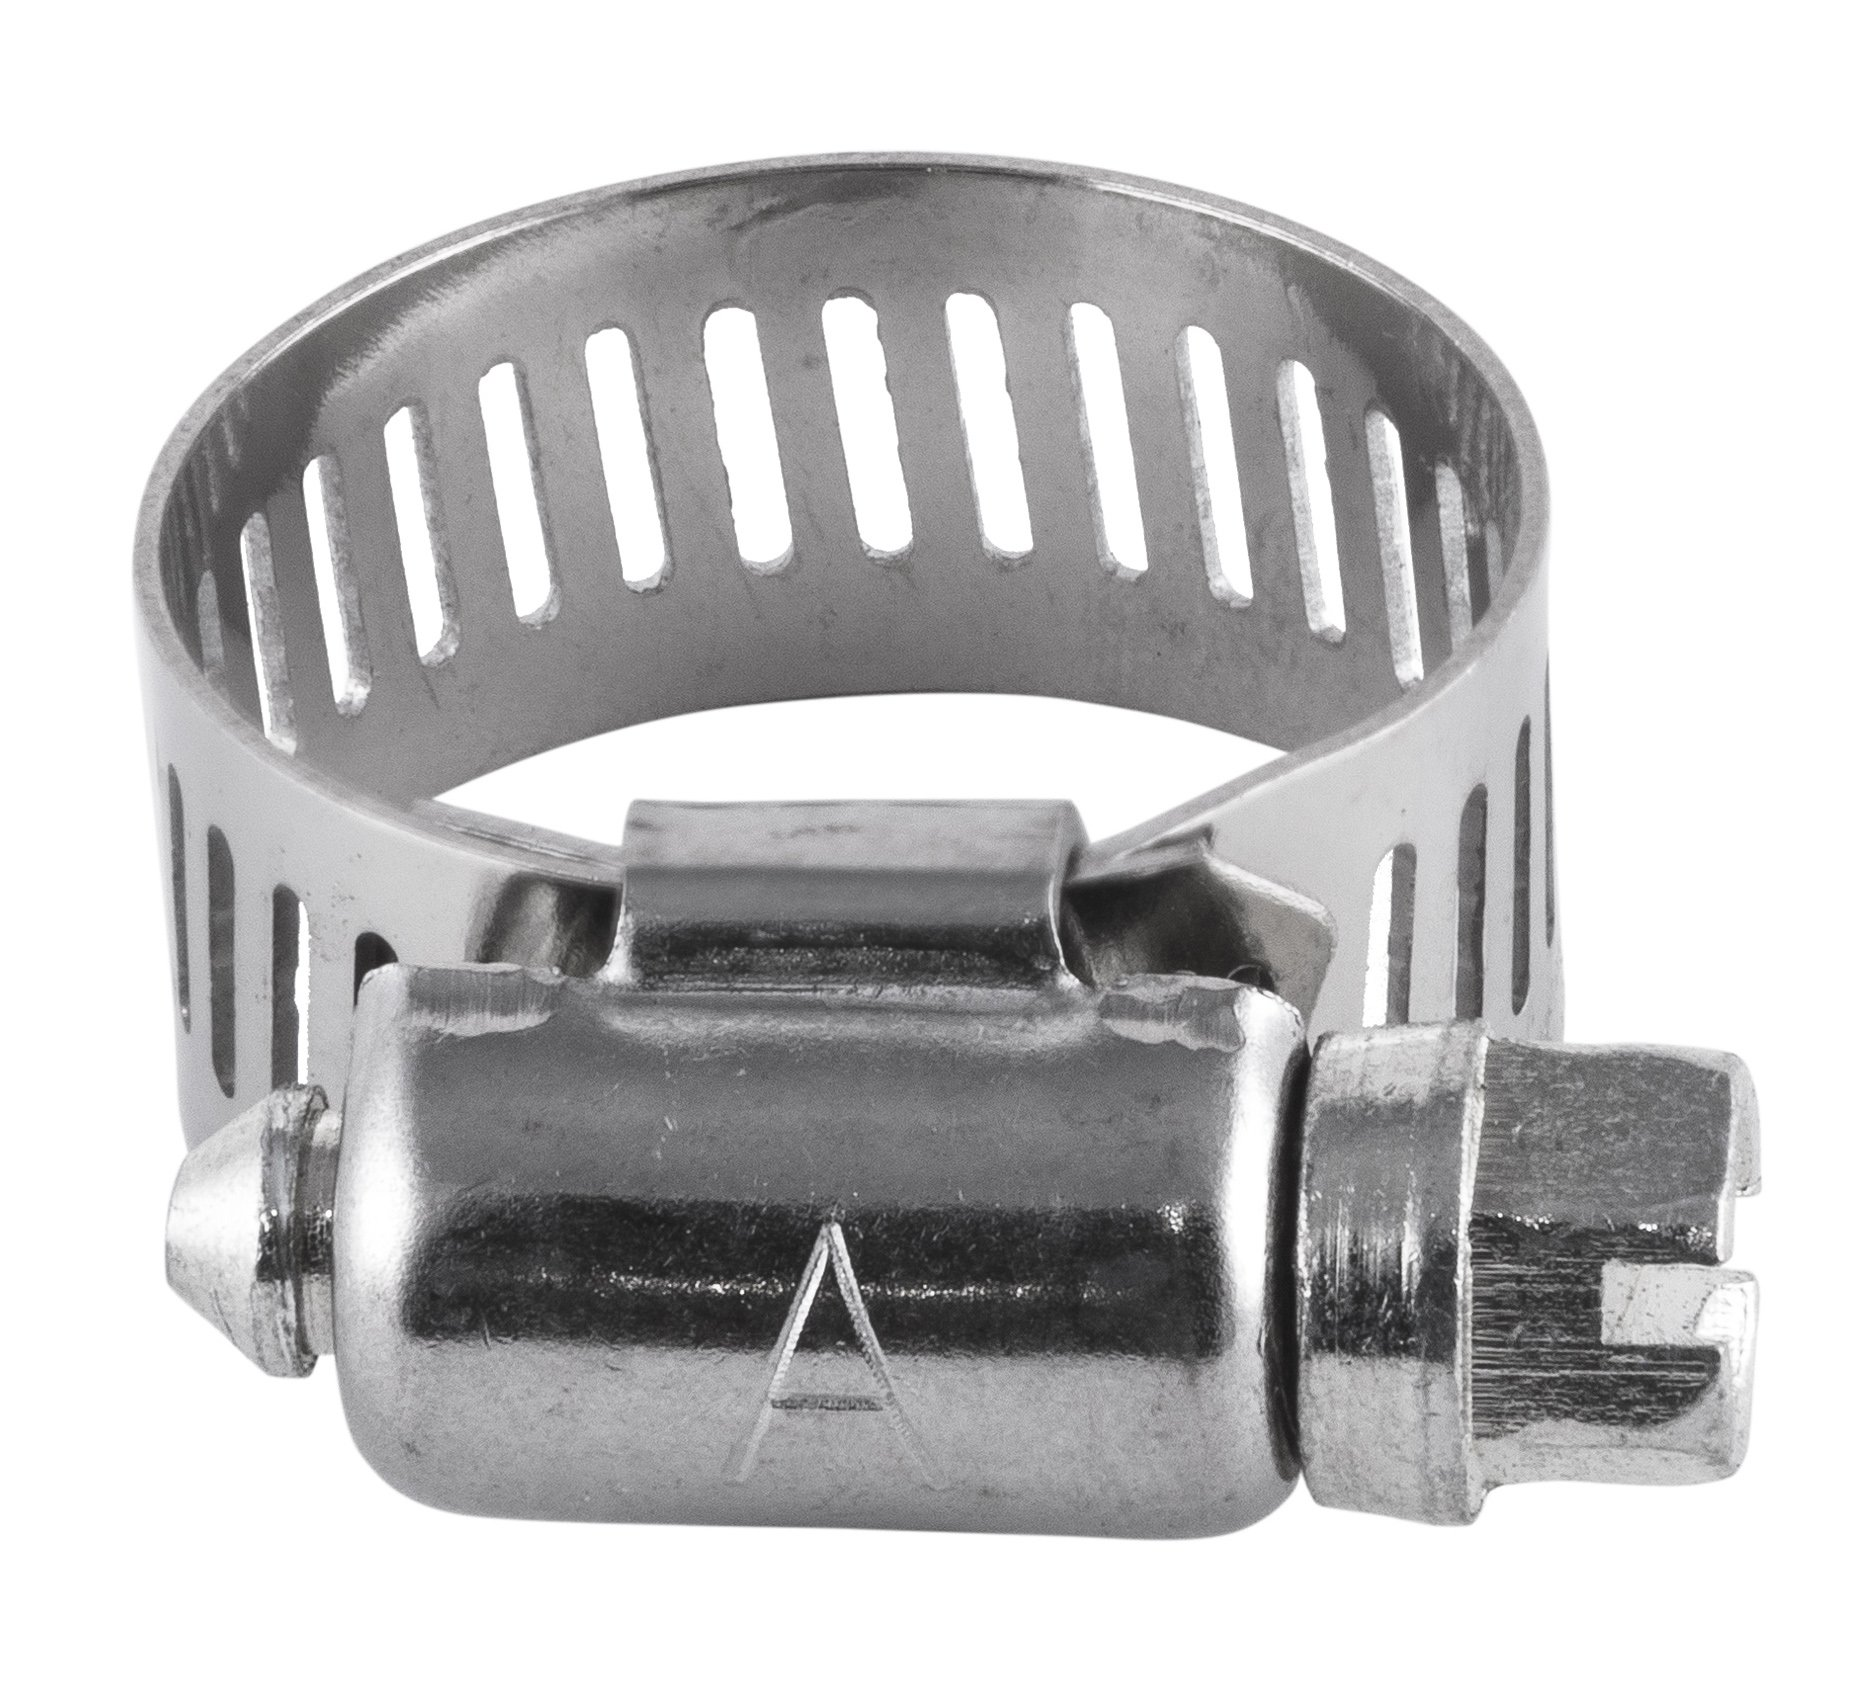 American Valve 2-Pack Worm Gear Hose Clamp, 7/16'' to 29/32'' (SAE size 8), CL8PK2, Stainless Steel Band & Housing by American Valve (Image #1)